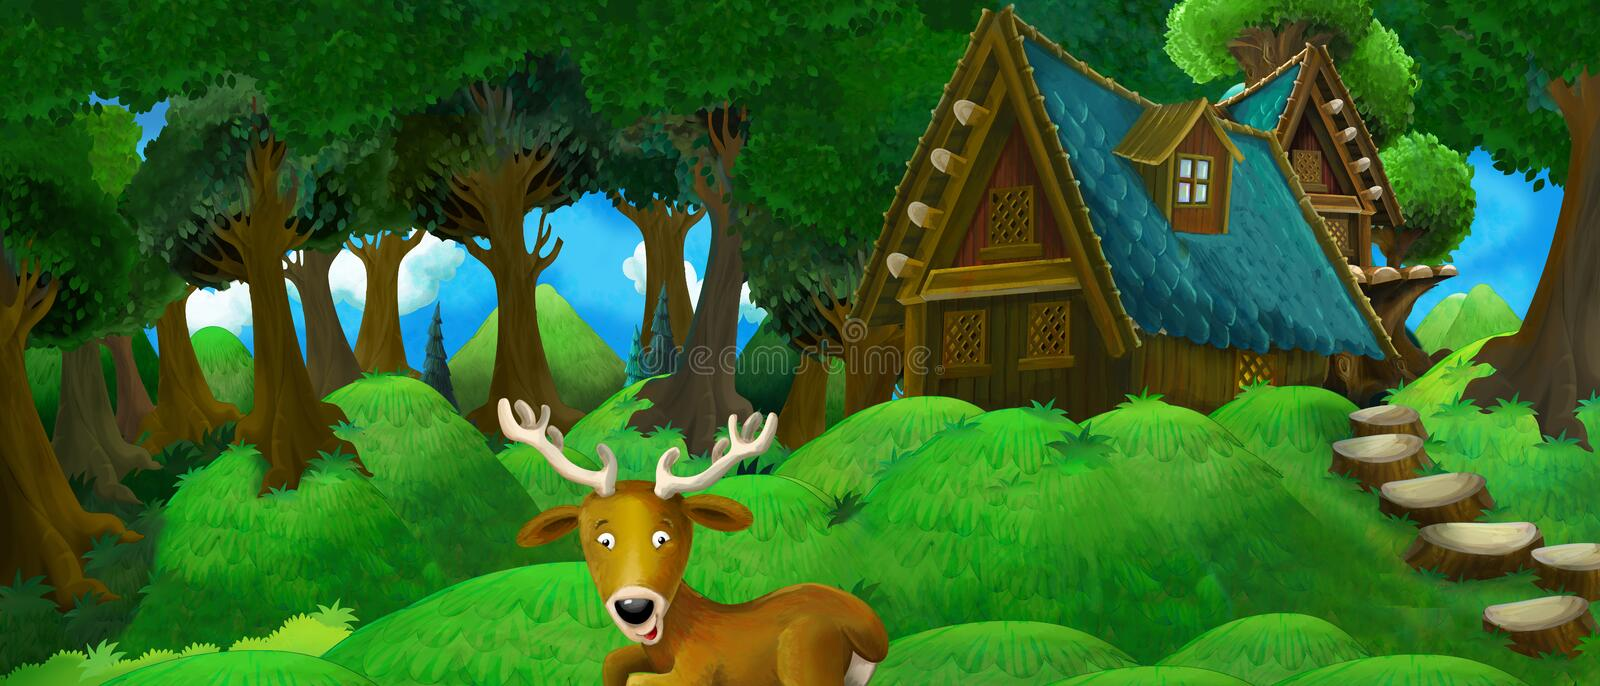 Cartoon summer scene with farm house in the forest with happy deer vector illustration